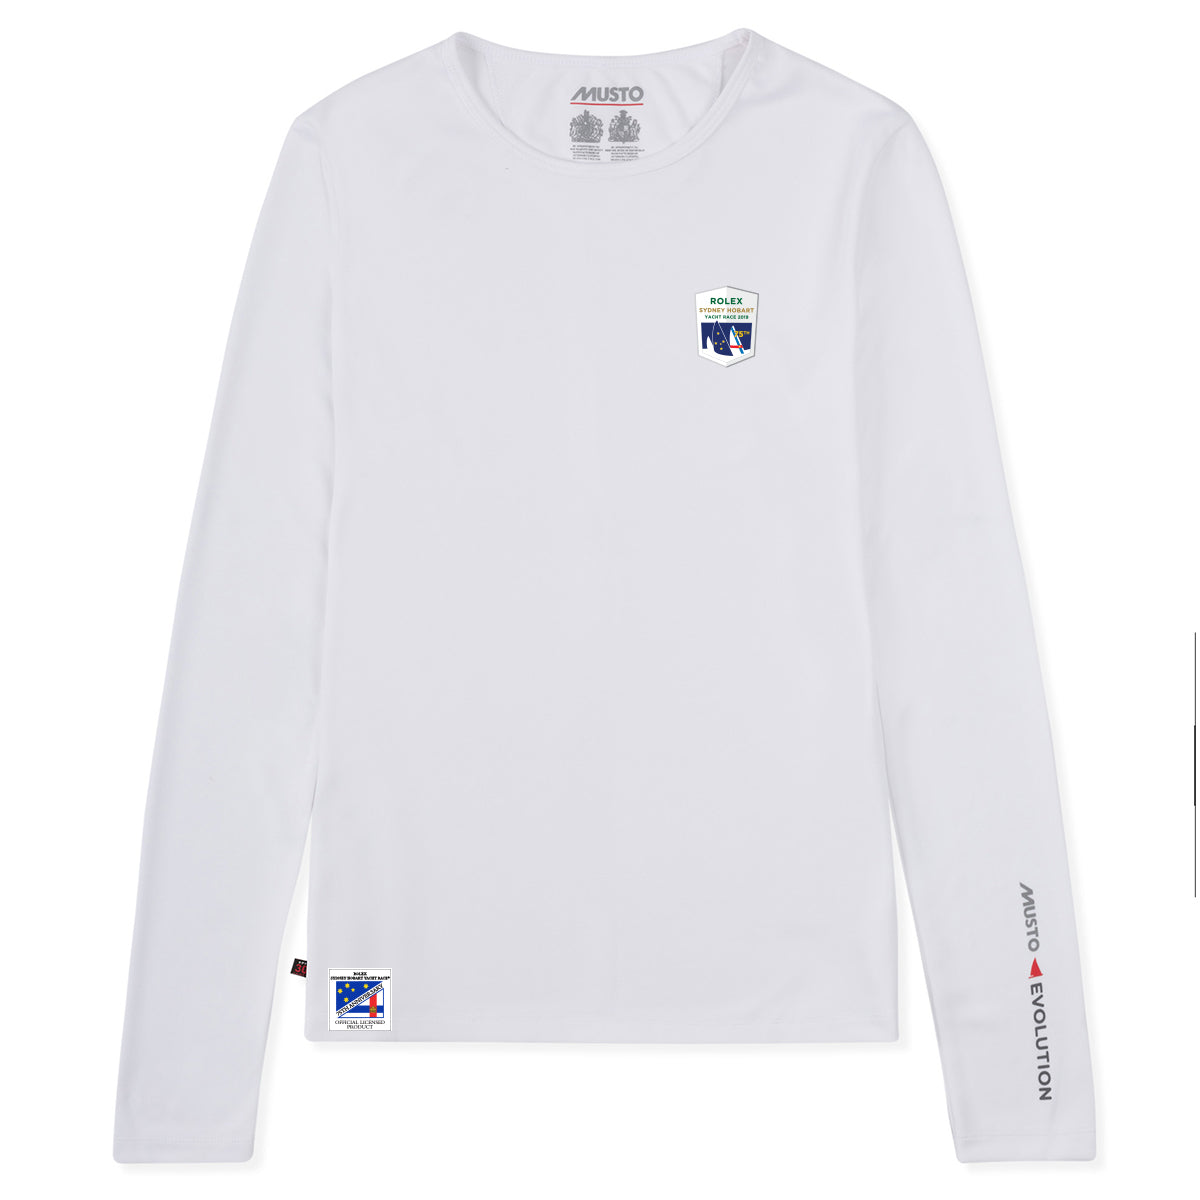 RSHYR19 Women's Boat Name LS Tee